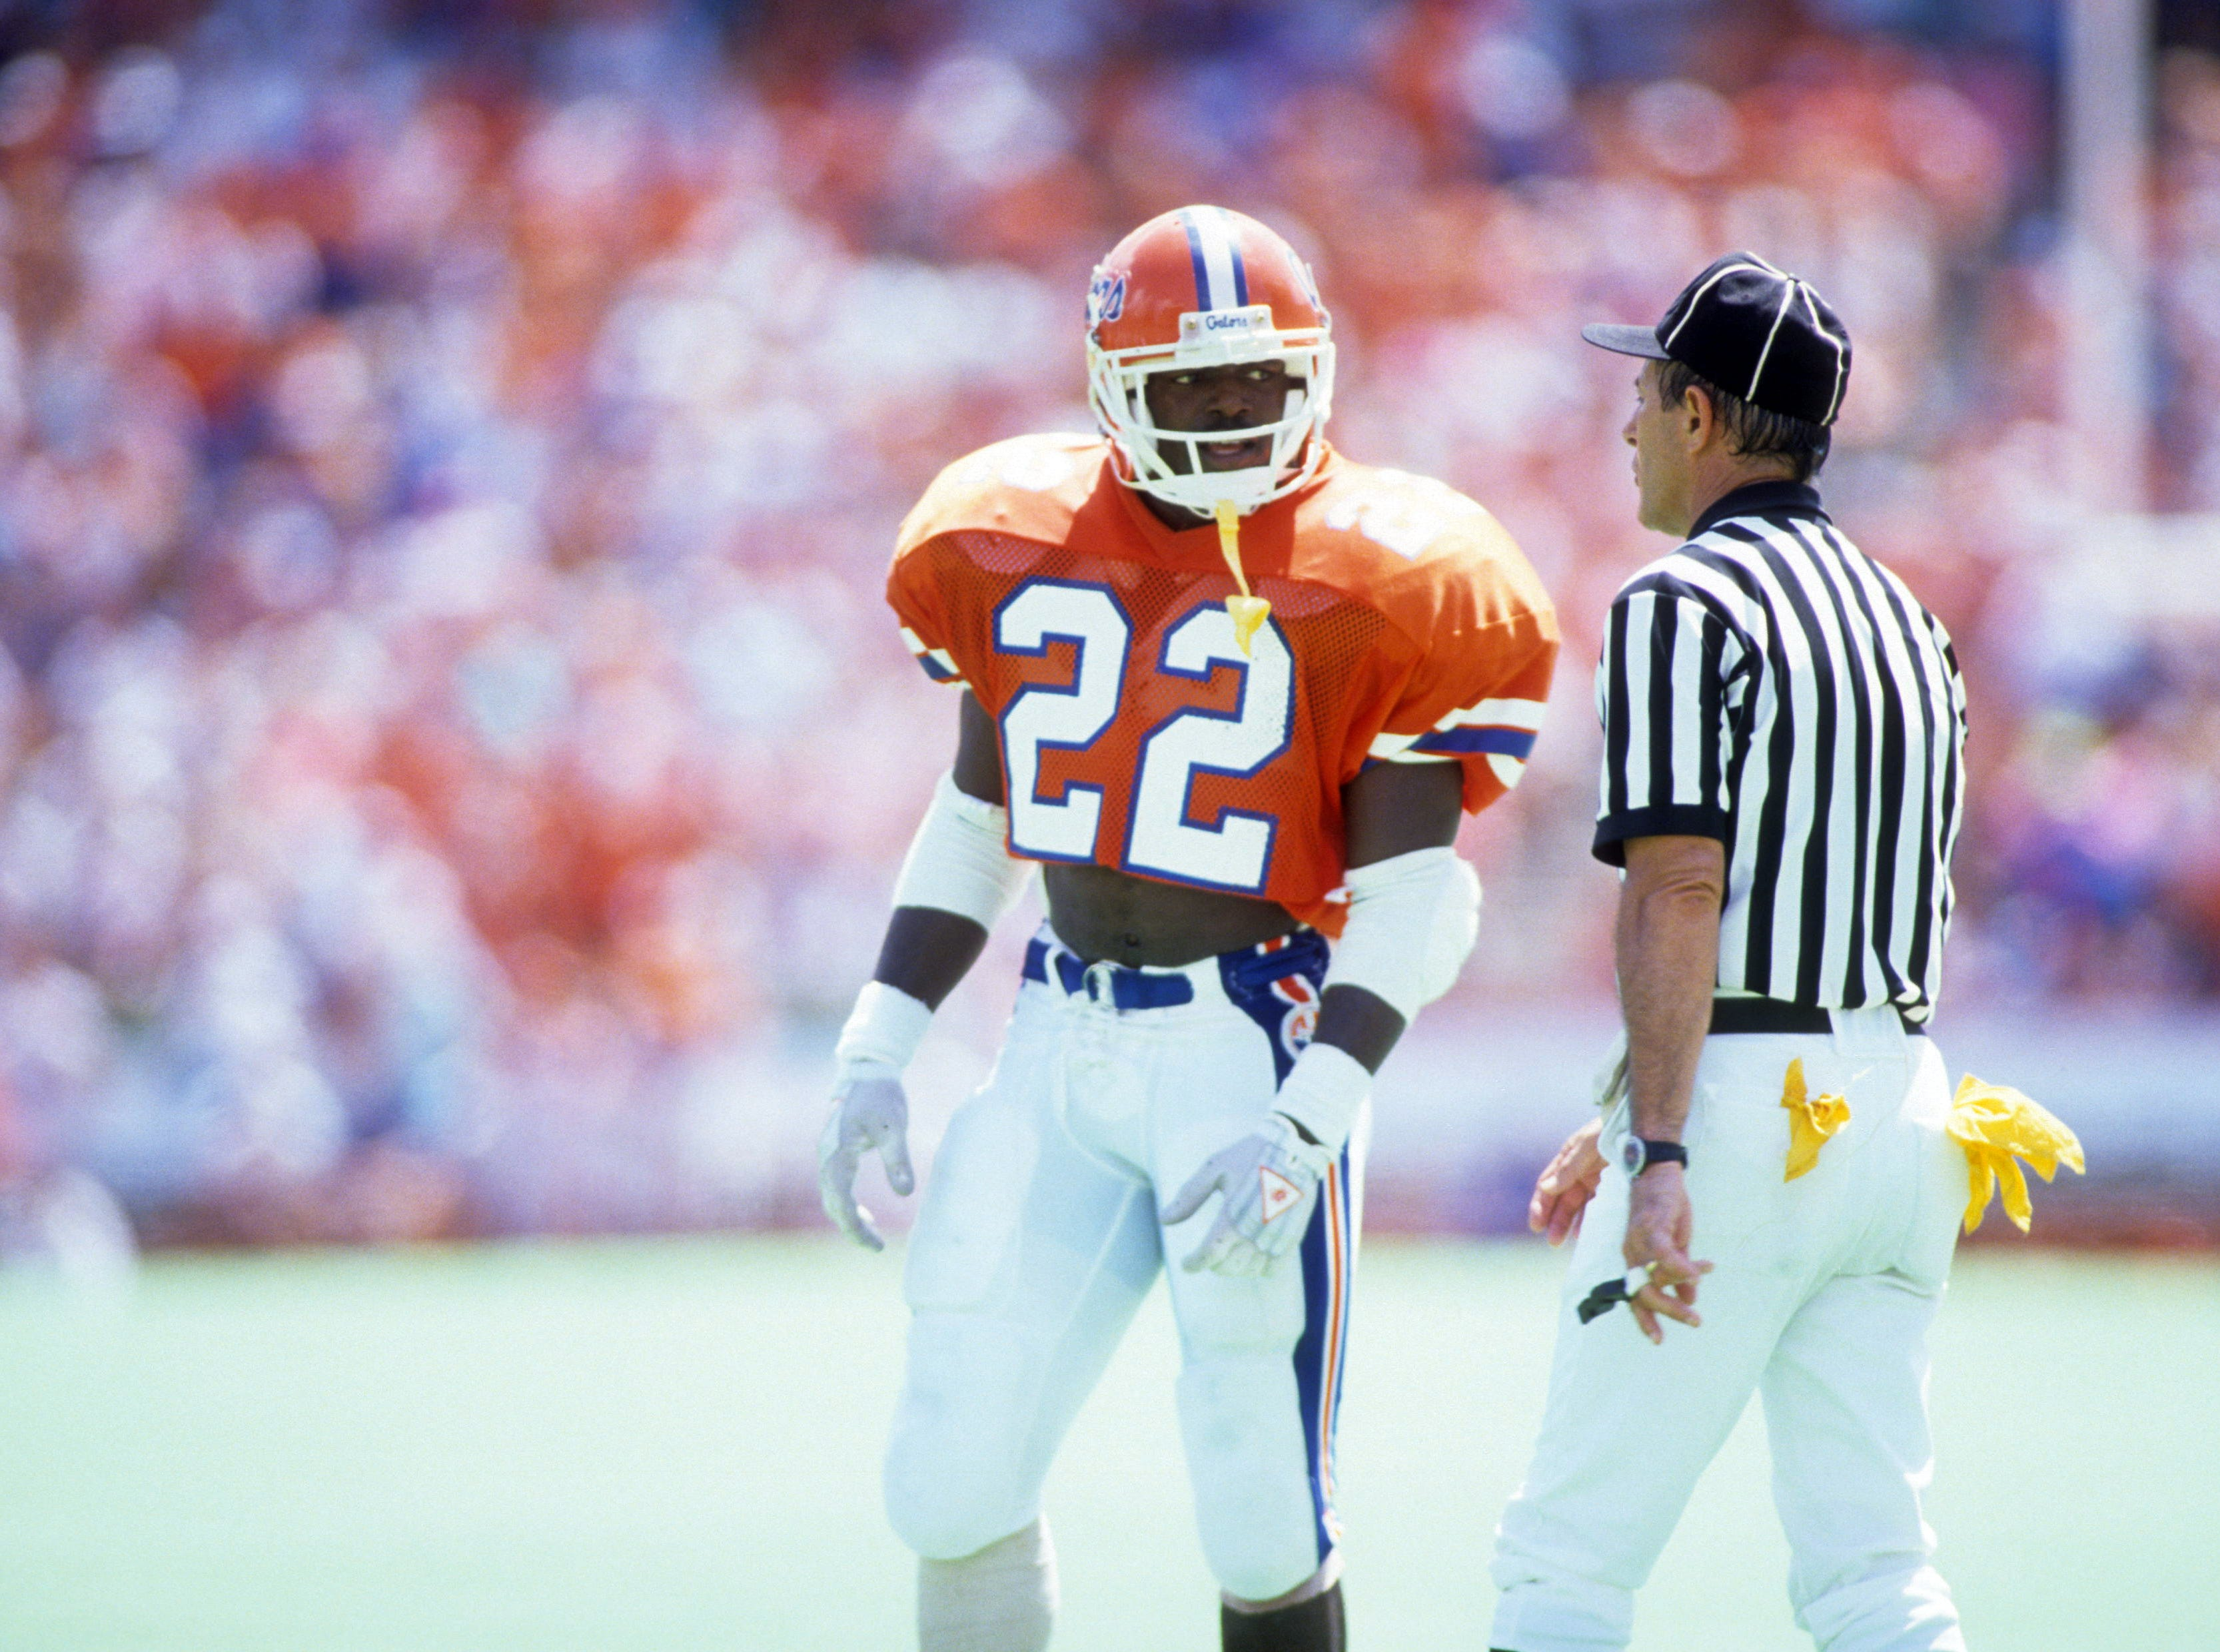 GAINSVILLE, FL - SEPTEMBER 9:  Running back Emmitt Smith #22 of the Florida Gators talks with the referee during a game against the Ole Miss Rebels at Ben Hill Griffin Stadium on September 9,1989 in Gainsville, Florida. The Rebels defeated the Gators 24-19.  (Photo by Allen Dean Steele/Getty Images)